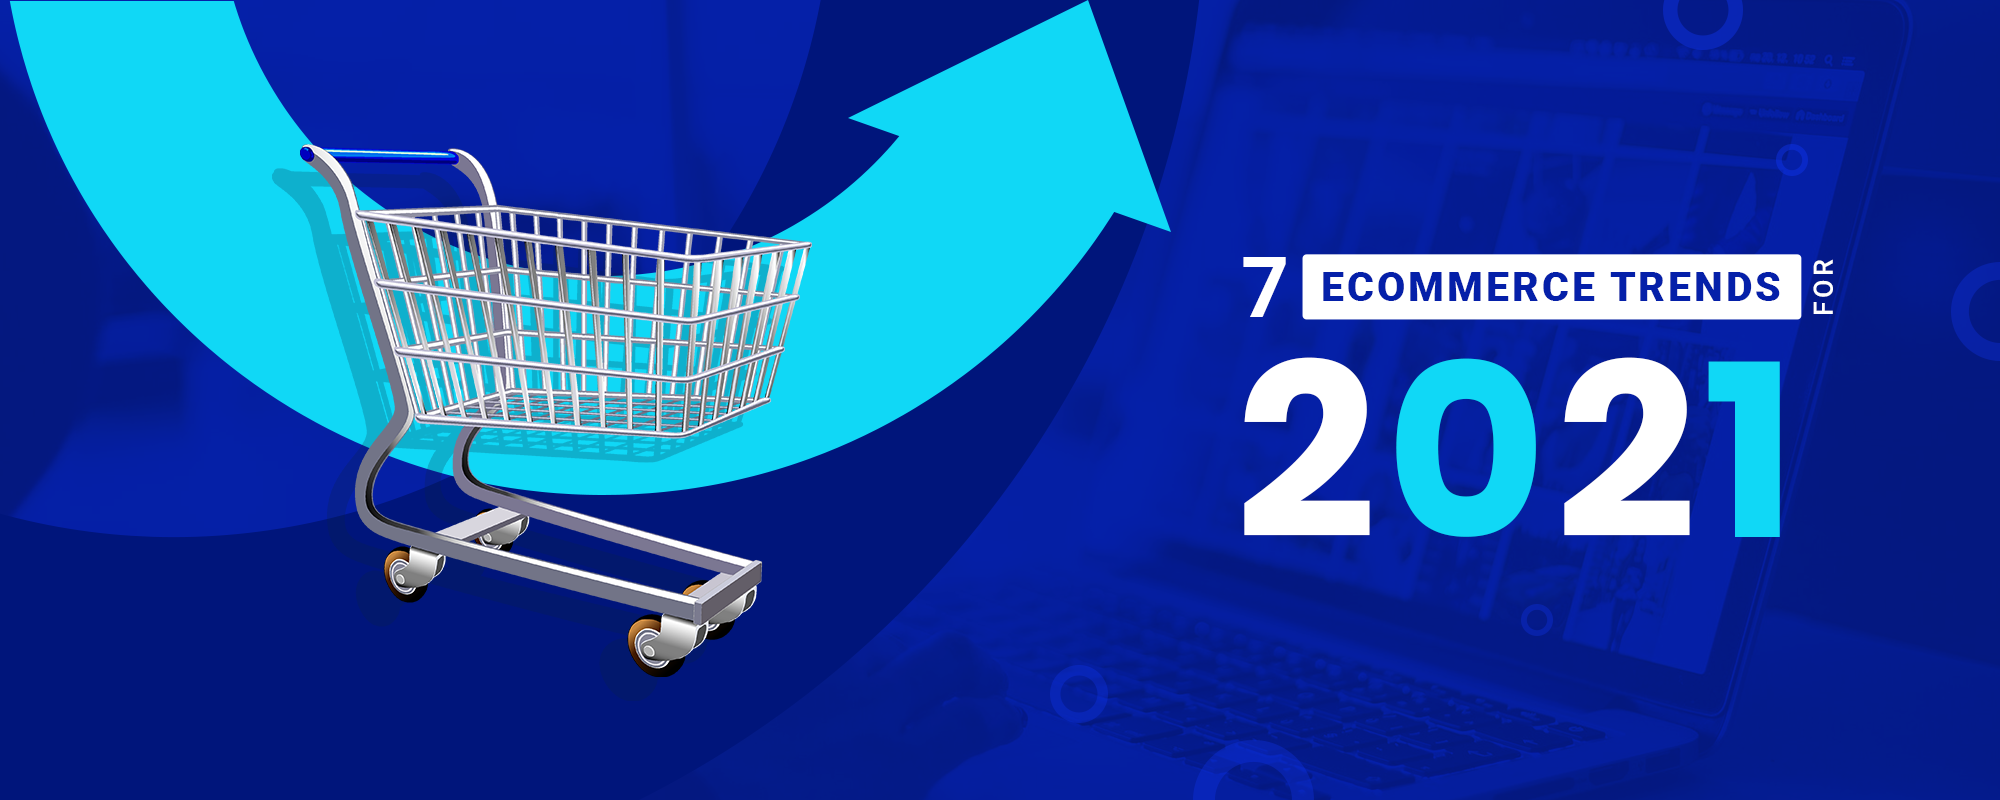 Top 7 Ecommerce Trends for 2021